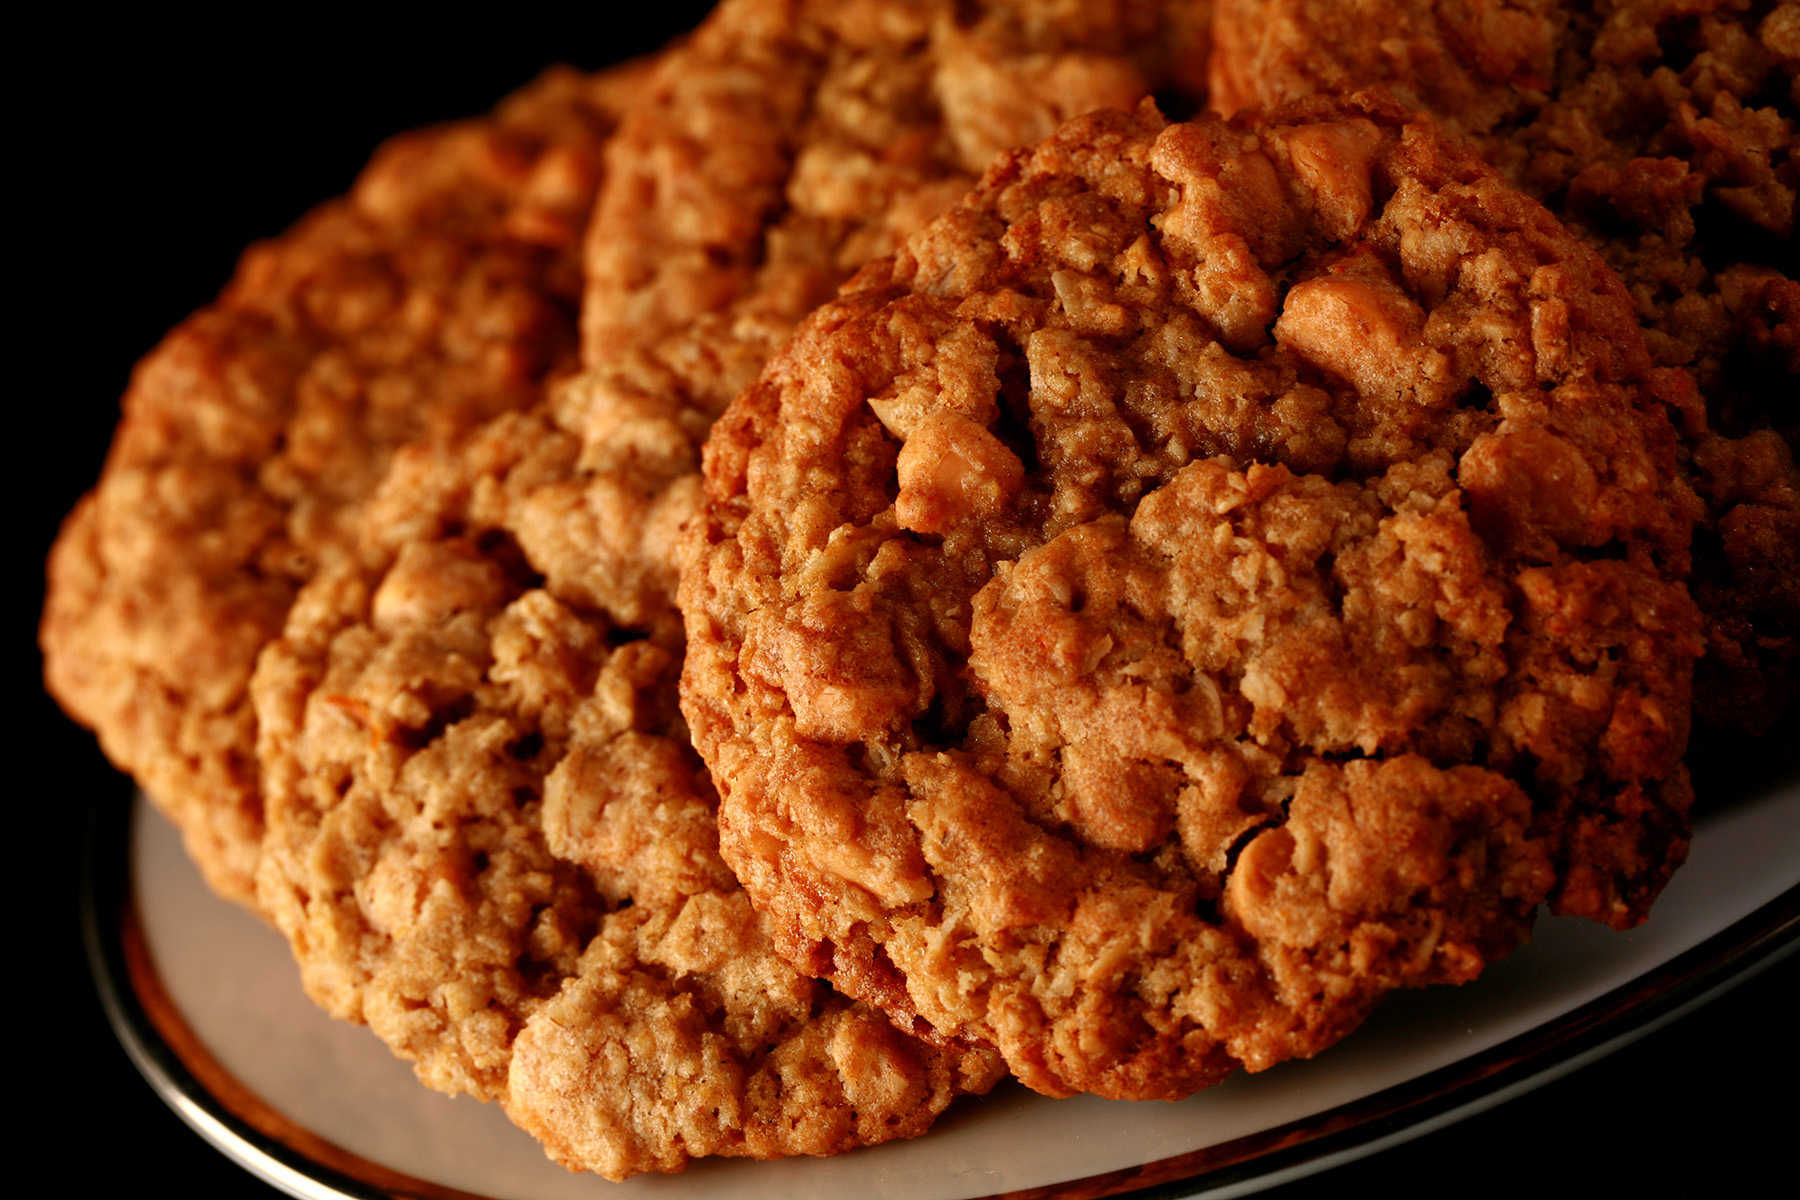 Close up photo of a plate of gluten-free oatmeal cookies with visible butterscotch chips